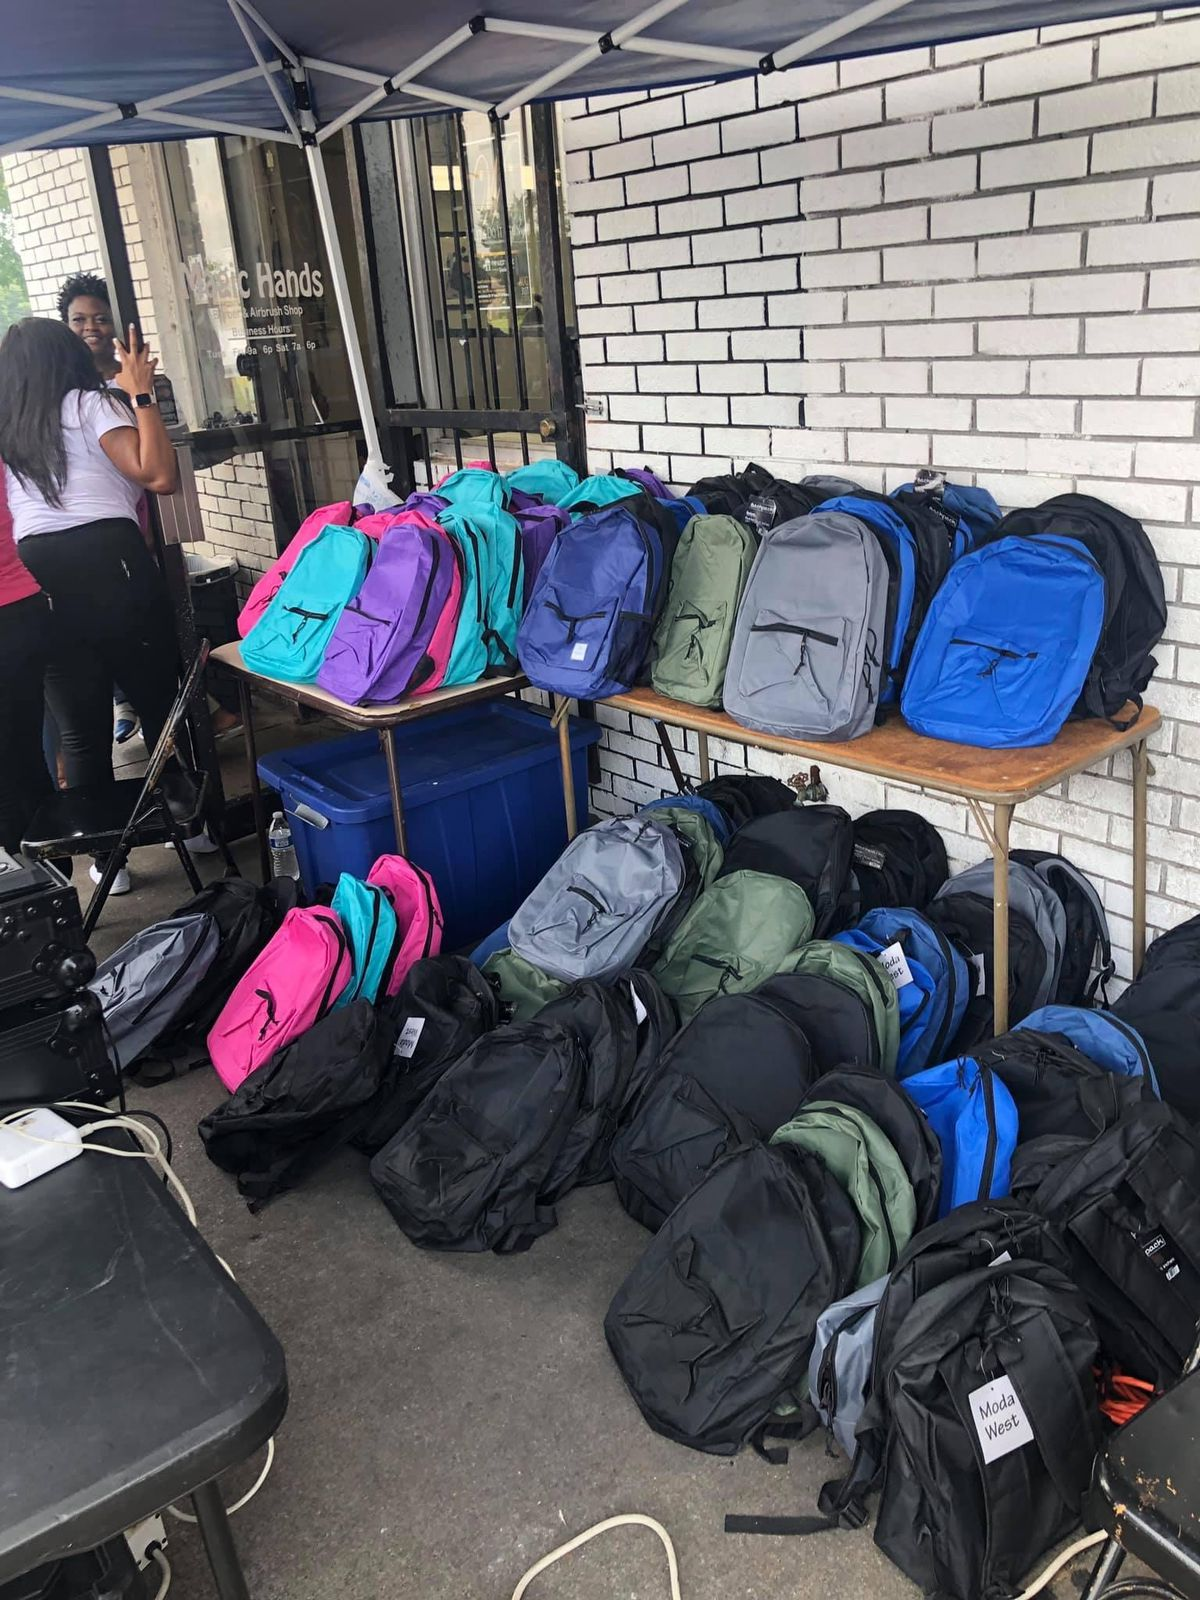 Dozens of new backpacks line a sidewalk waiting to be distributed as part of a back to school supply giveaway.